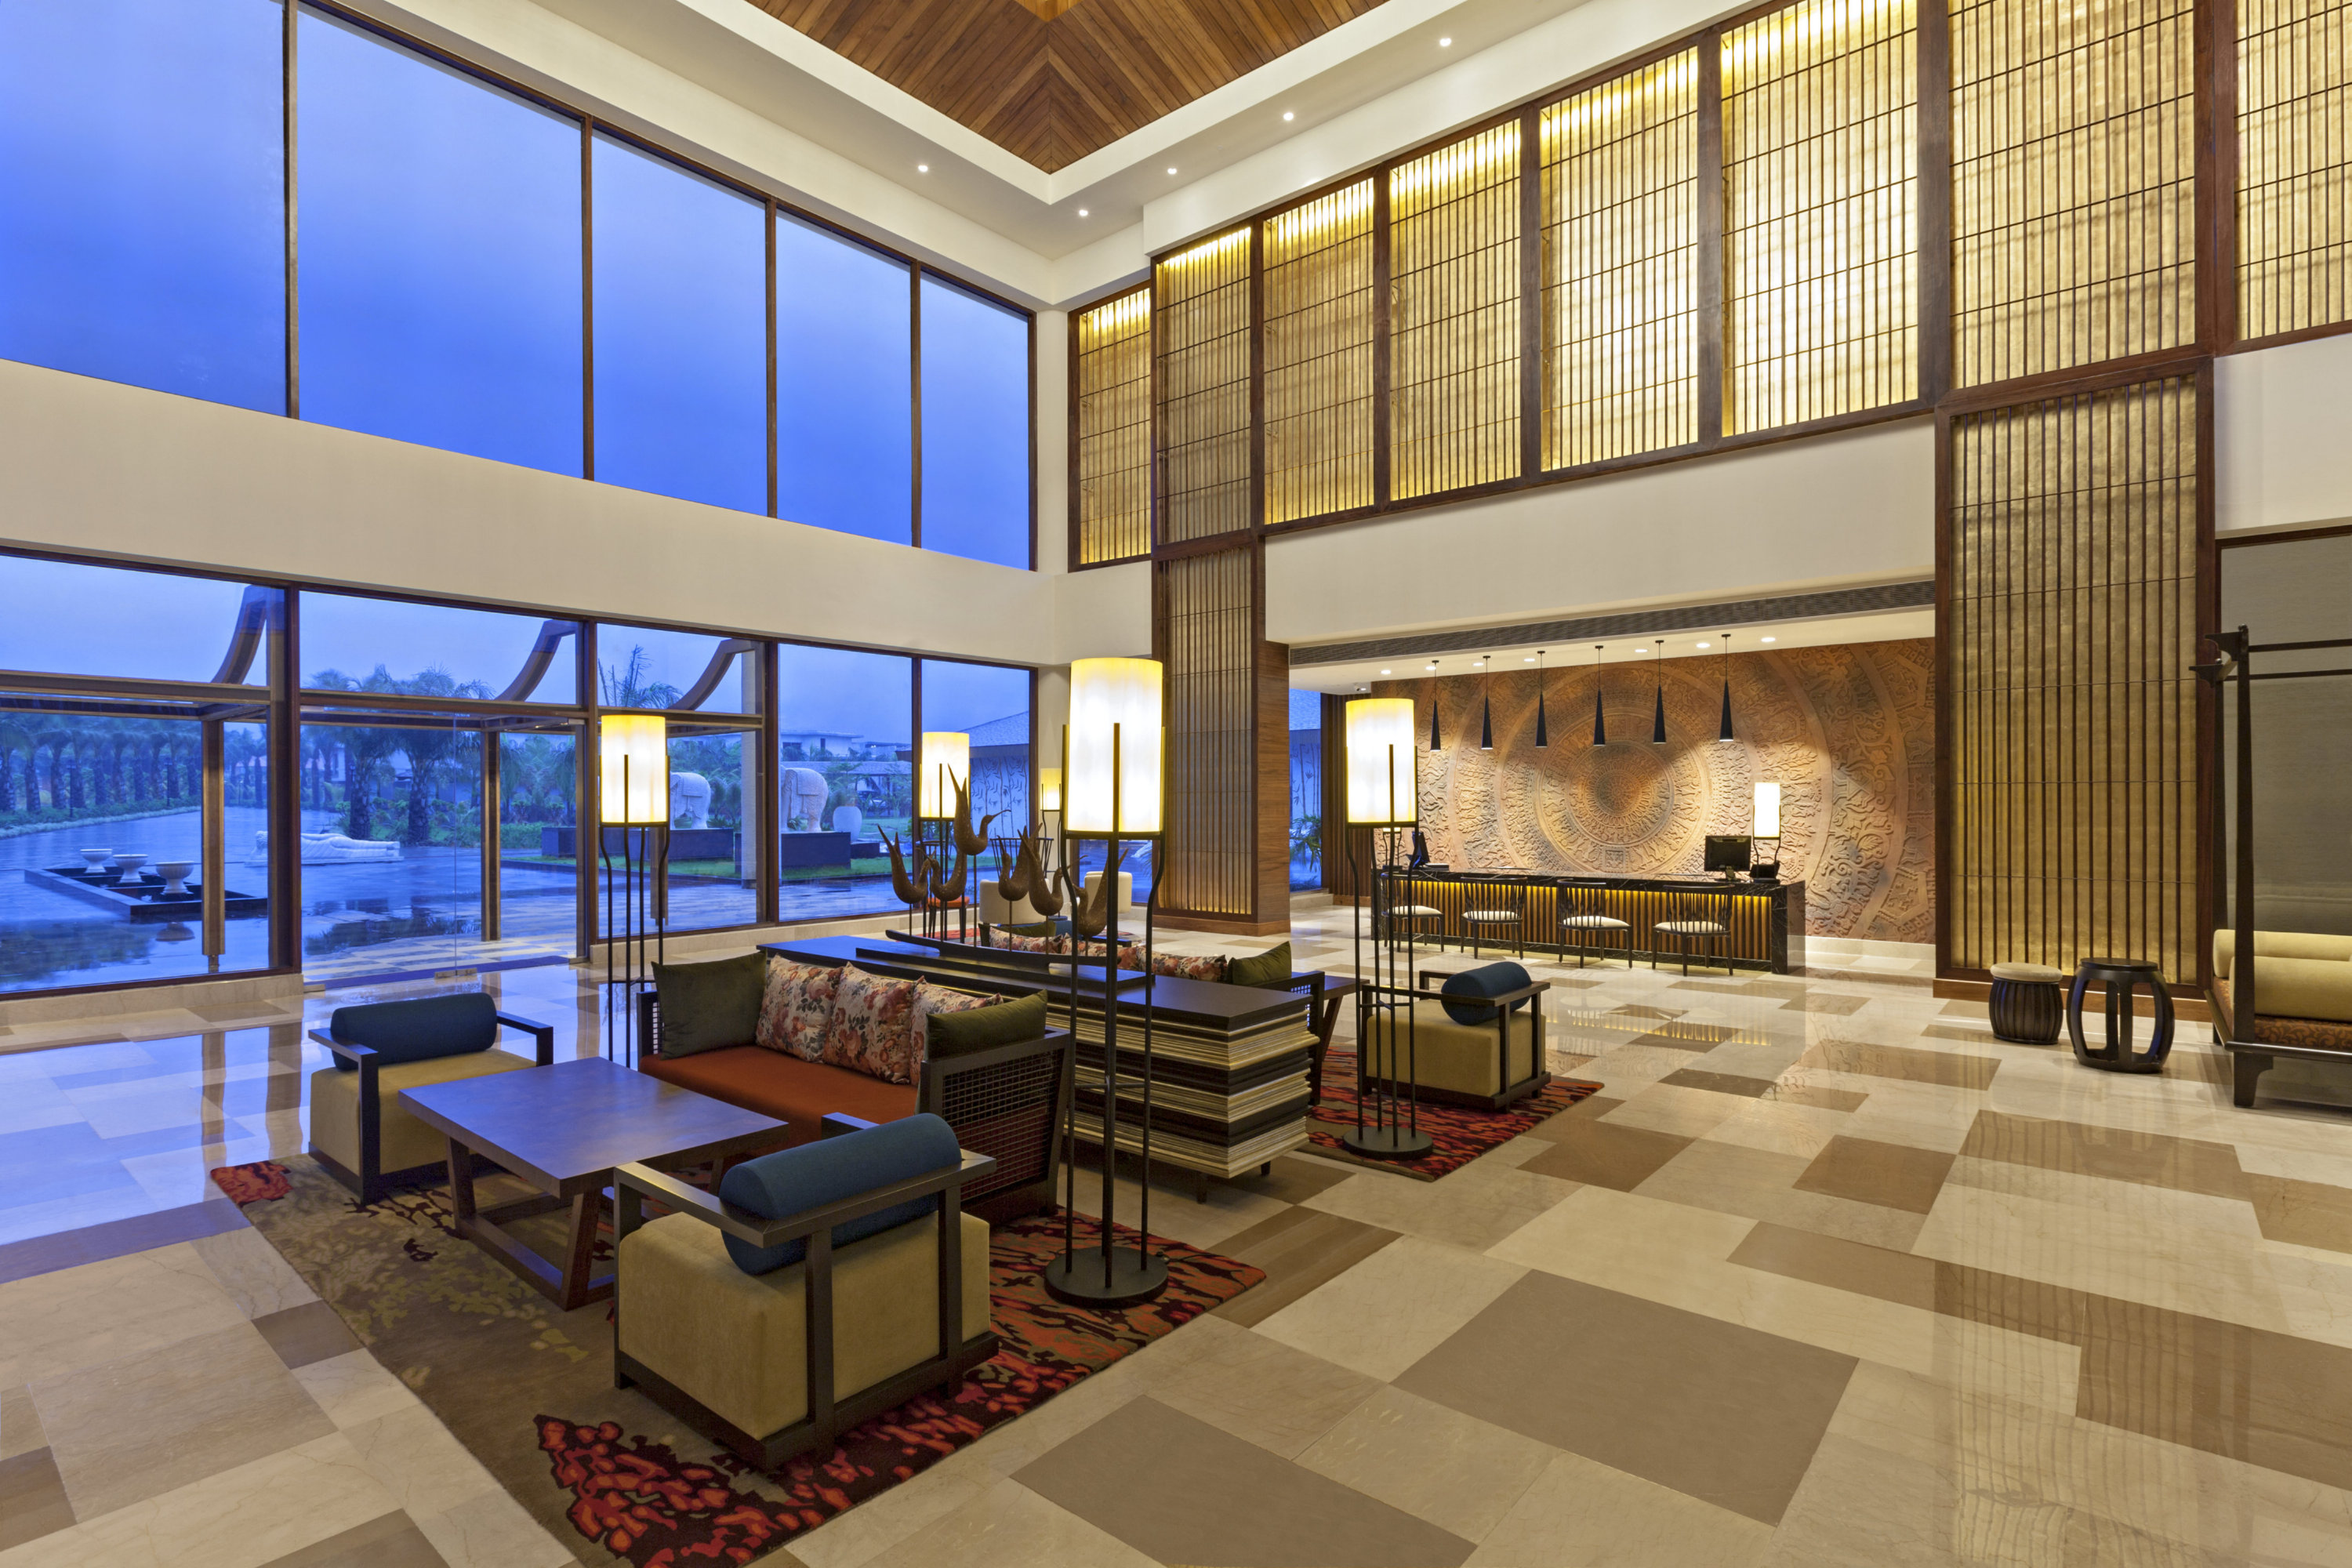 Karjat India  city images : ... Blu opens its first Resort and Spa in Karjat, India – brandturks